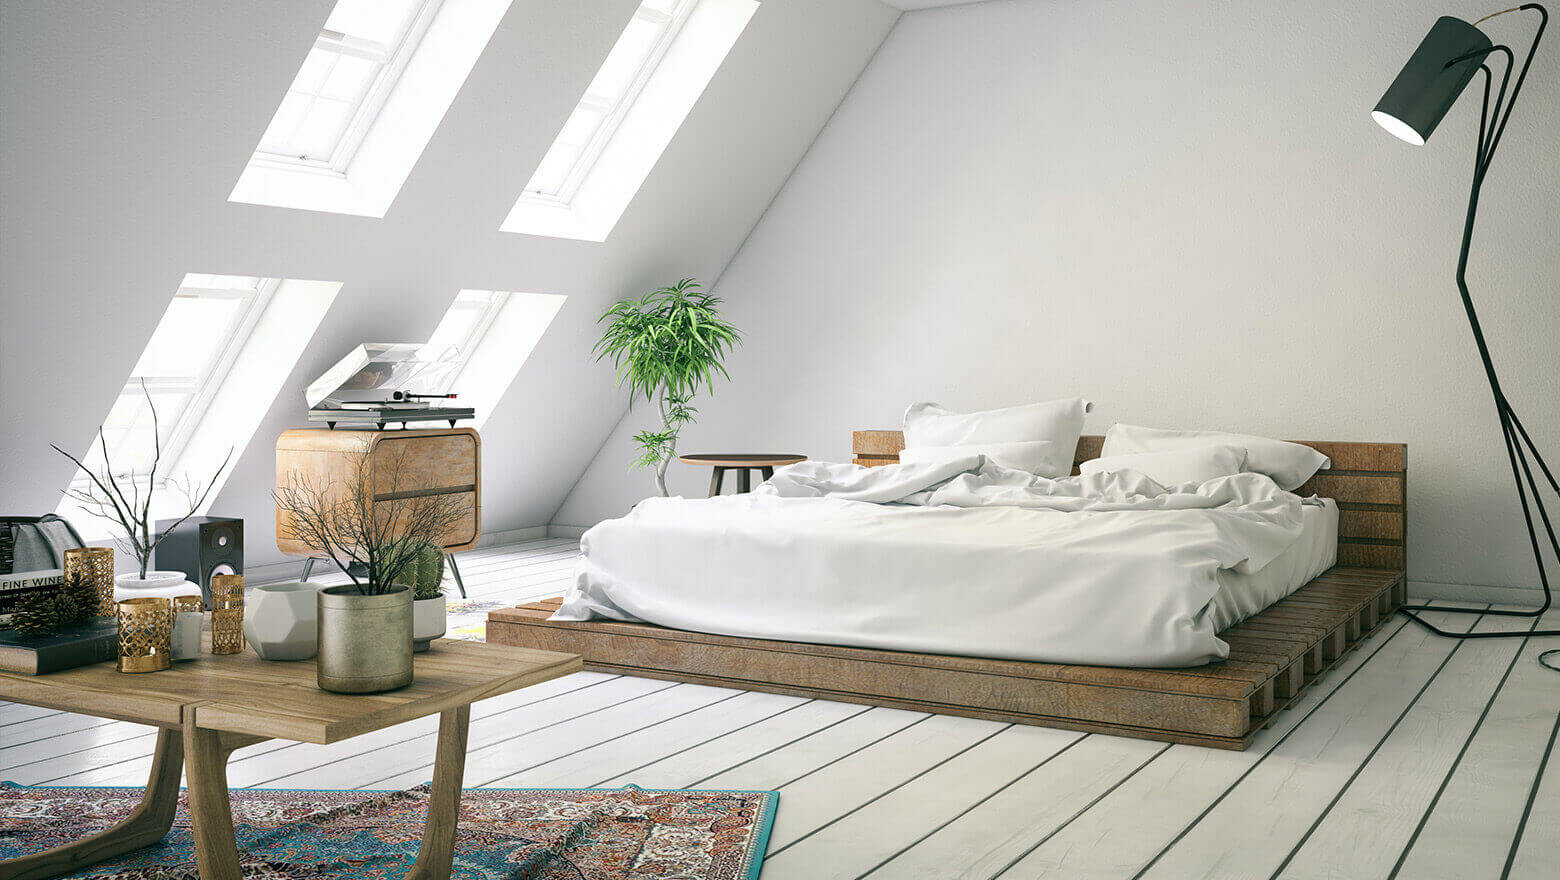 hight resolution of attic remodels 101 pulling off an attic conversion project